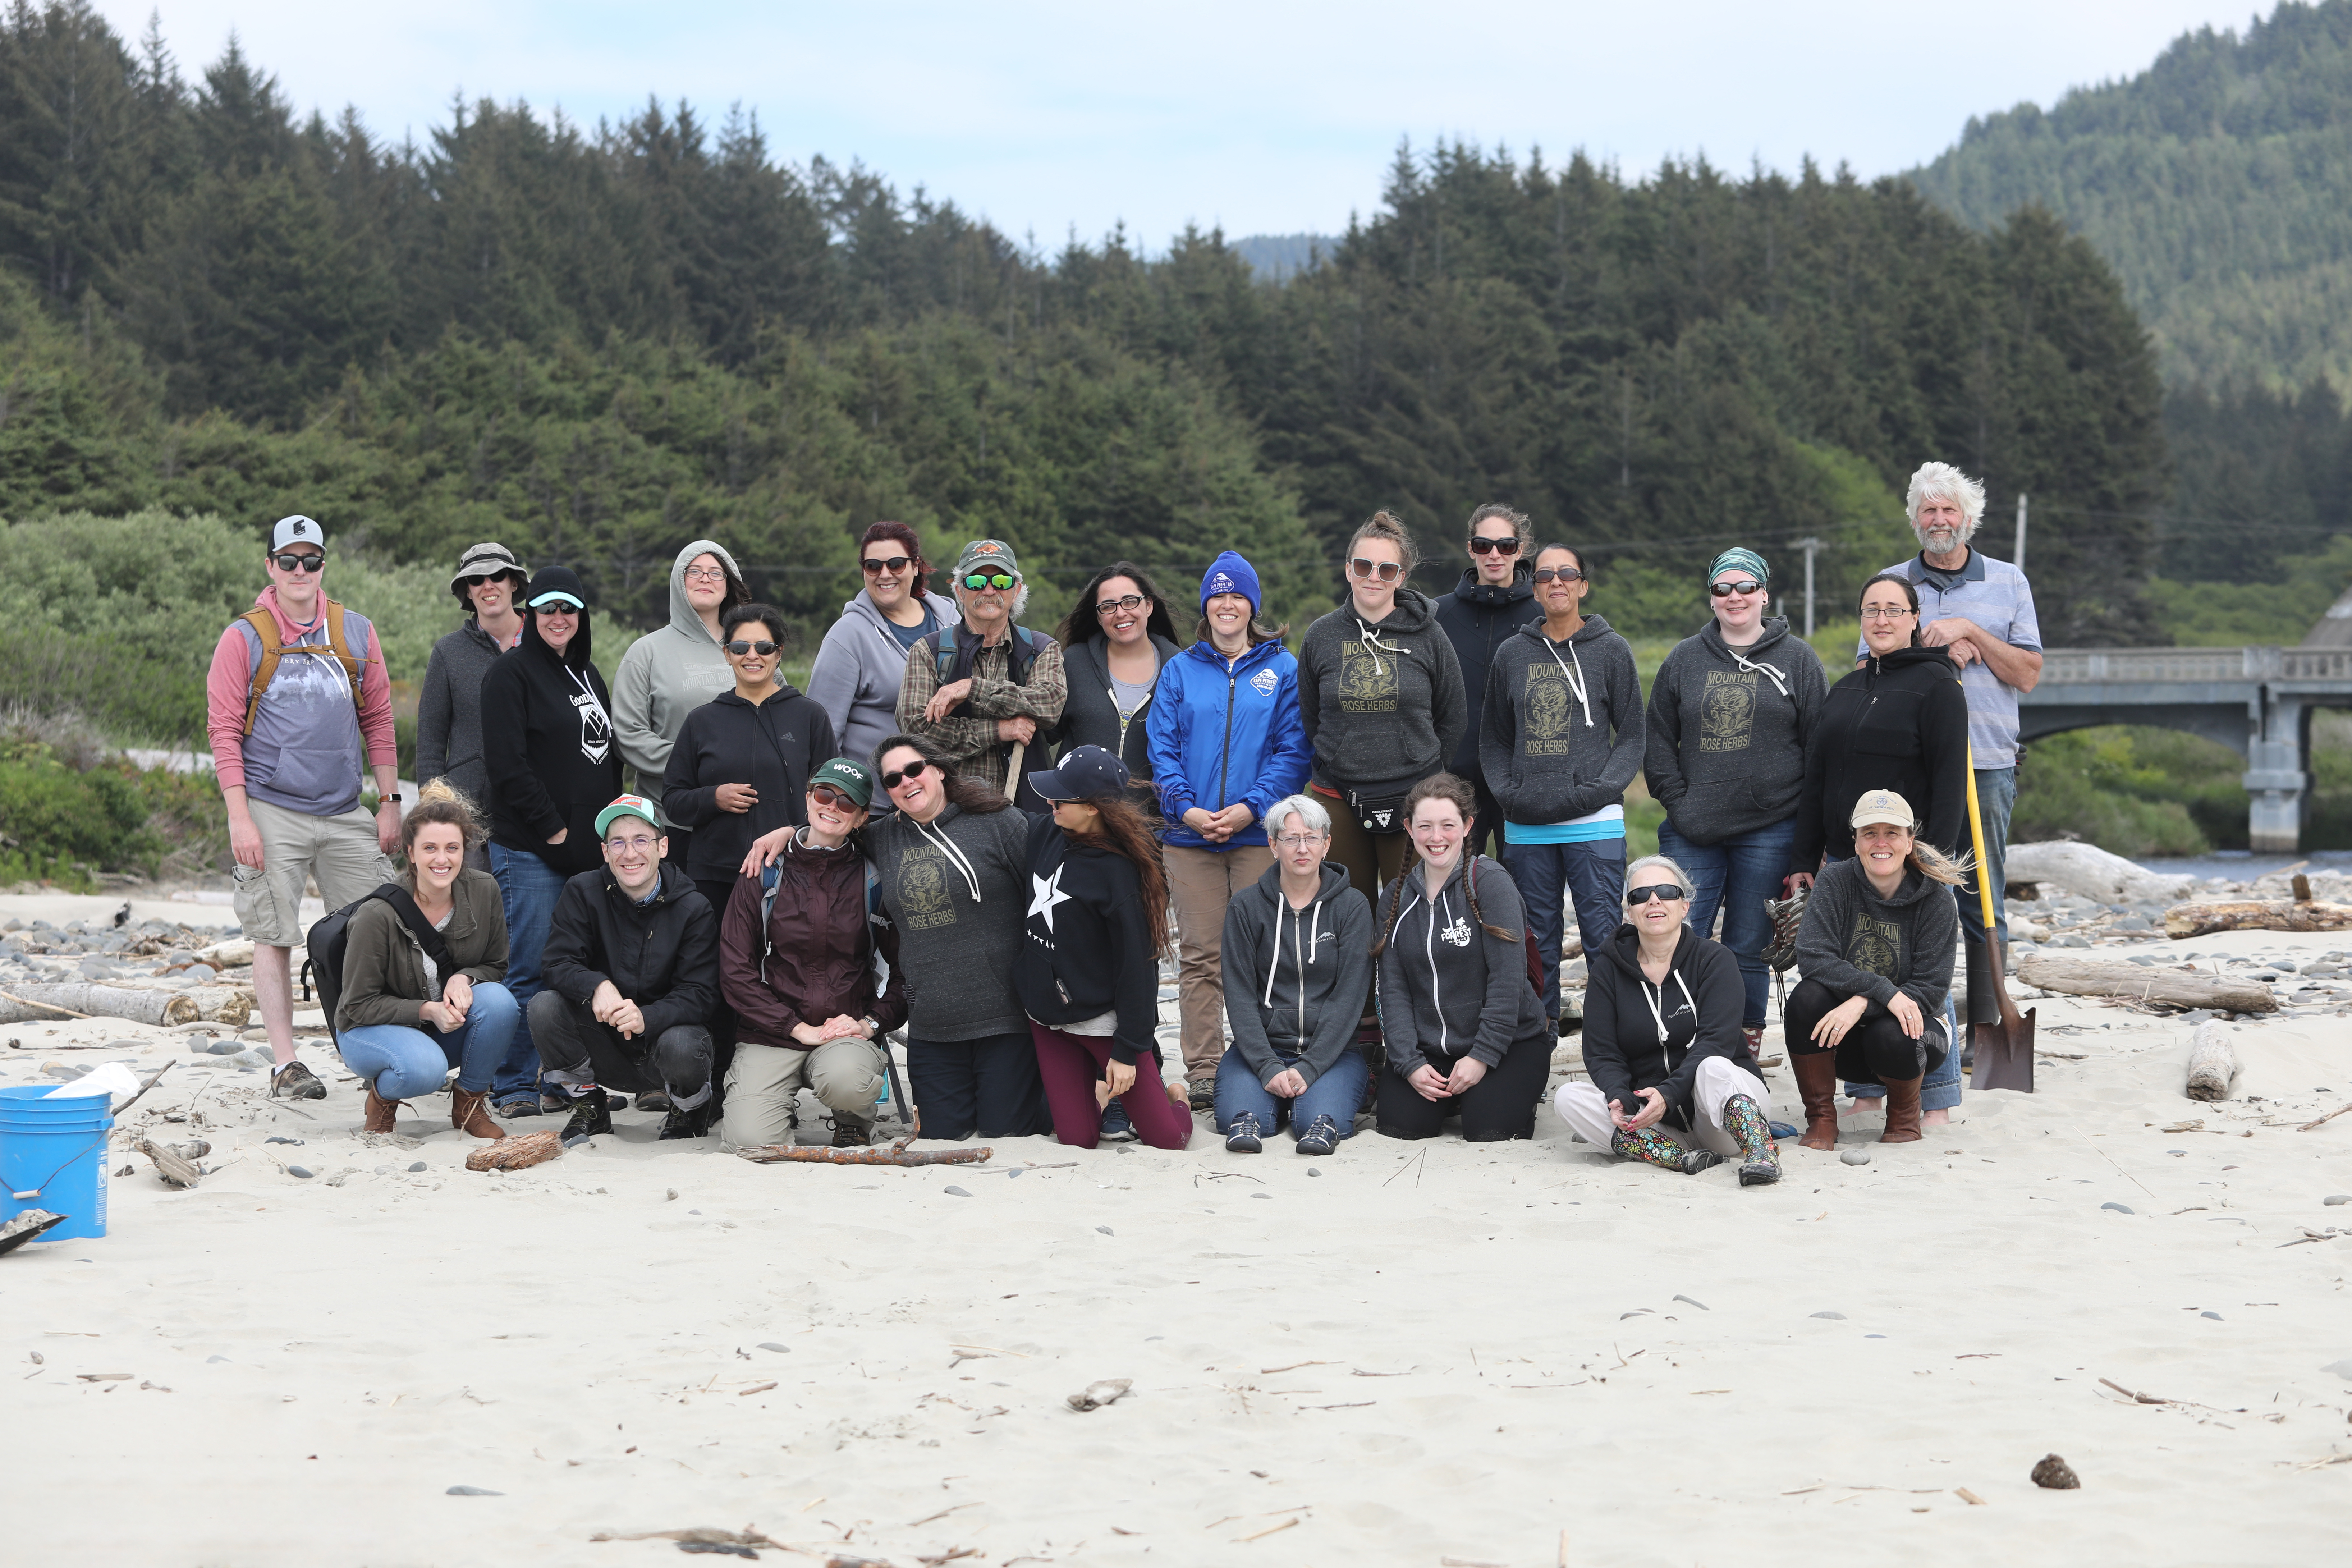 Mountain Rose Herbs Green Team beach cleanup day. Members of the green team pose after a day of cleaning the local beaches in Oregon.